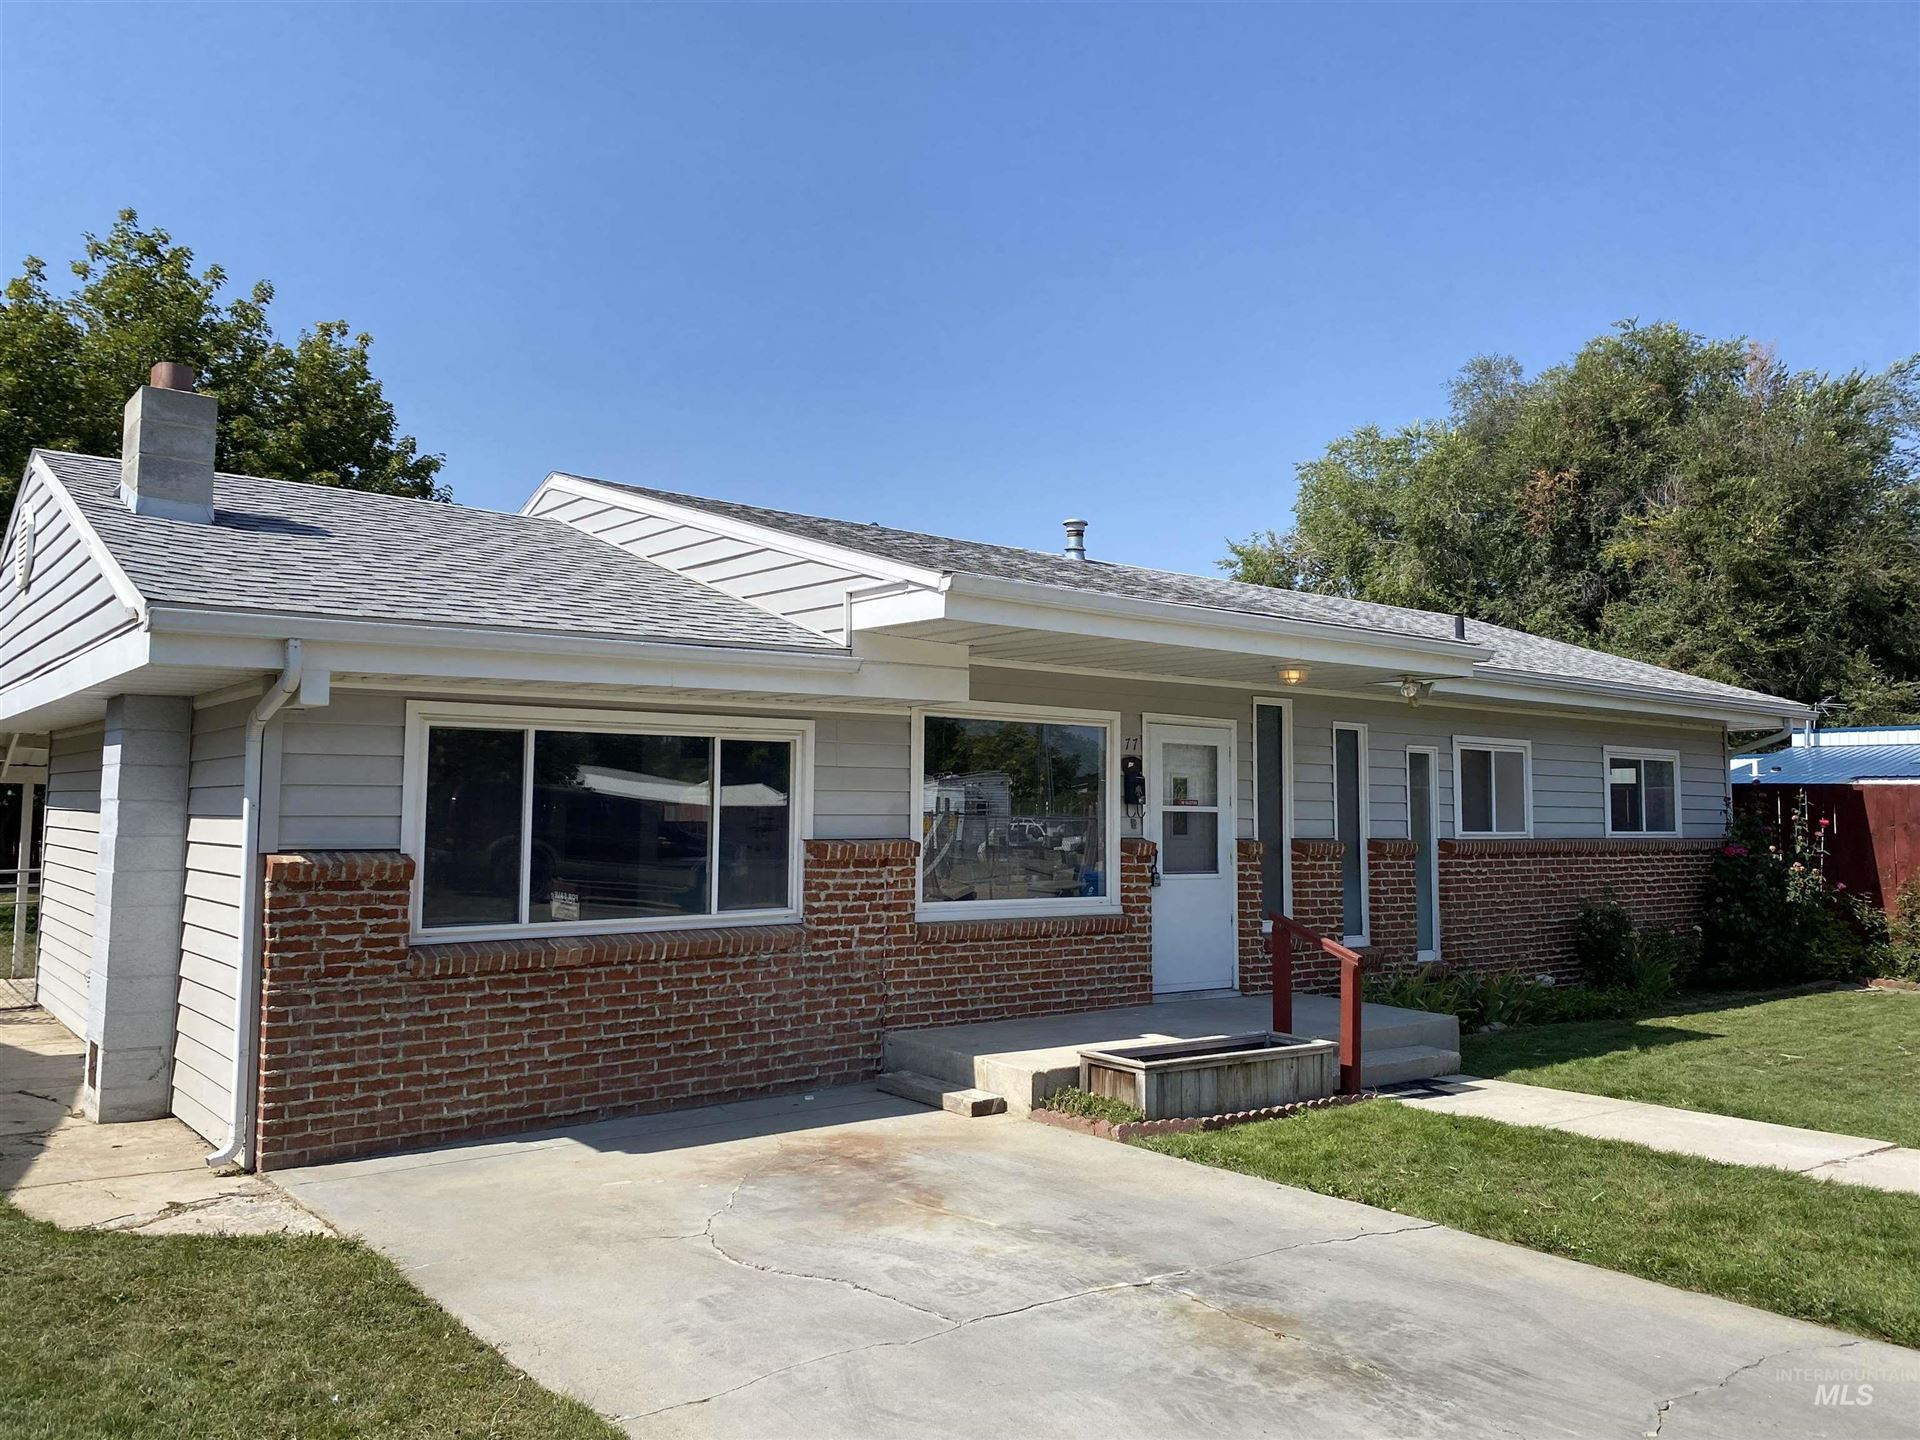 Photo of 77 S State St., Nampa, ID 83651 (MLS # 98819432)